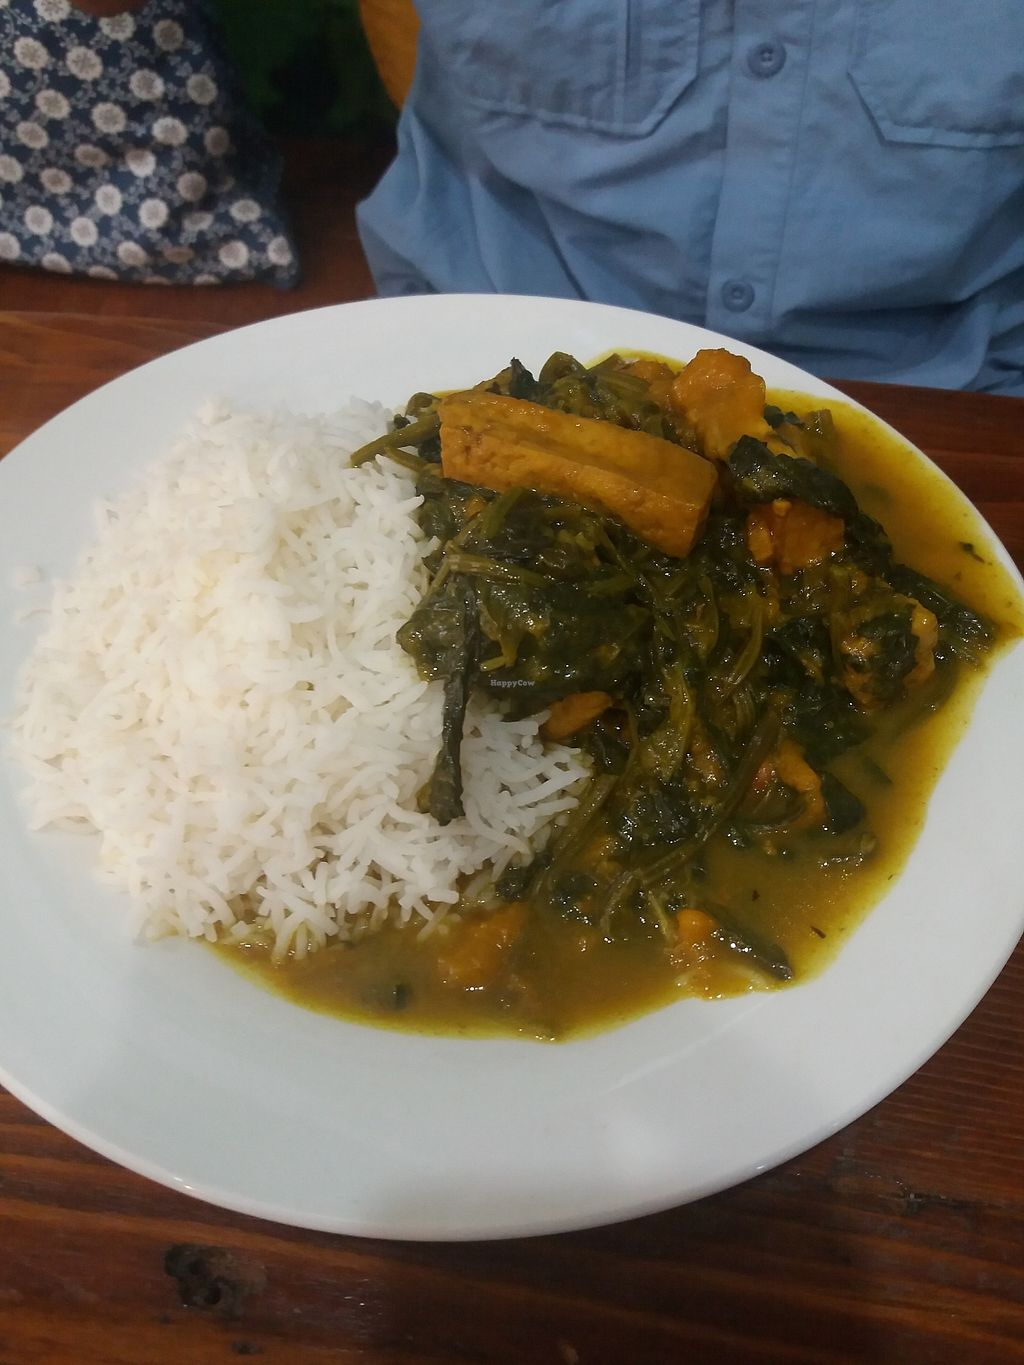 """Photo of Hari's Vegetarian  by <a href=""""/members/profile/veganvirtues"""">veganvirtues</a> <br/>Spinach, pumpkin and rice <br/> April 2, 2018  - <a href='/contact/abuse/image/32555/379701'>Report</a>"""